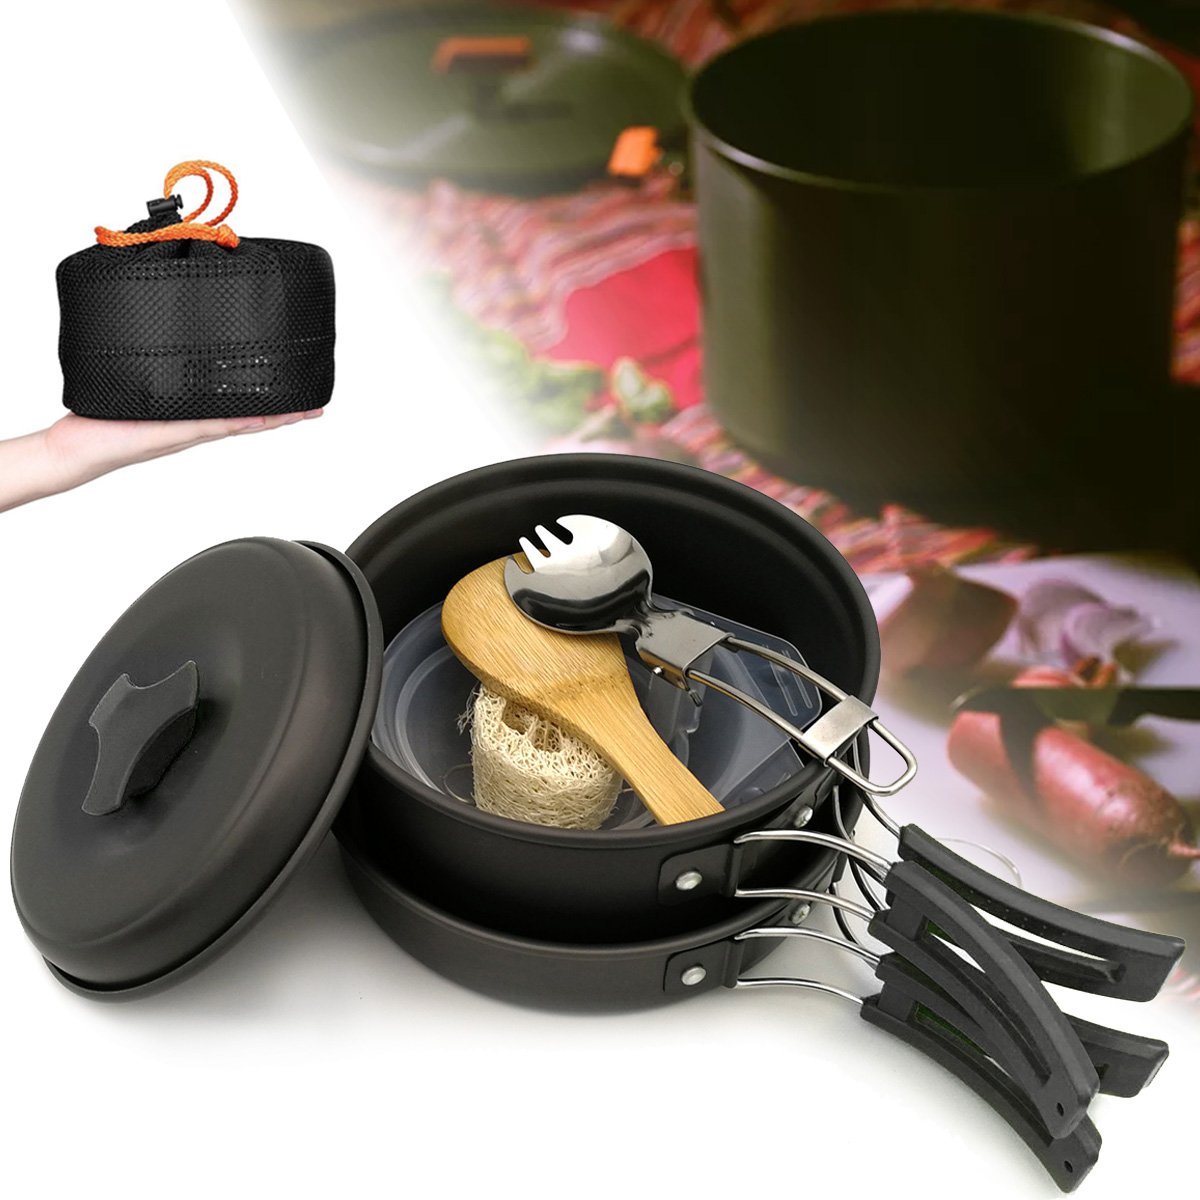 1-2 People Portable Cookware Set Backpacking Gas Butane Propane